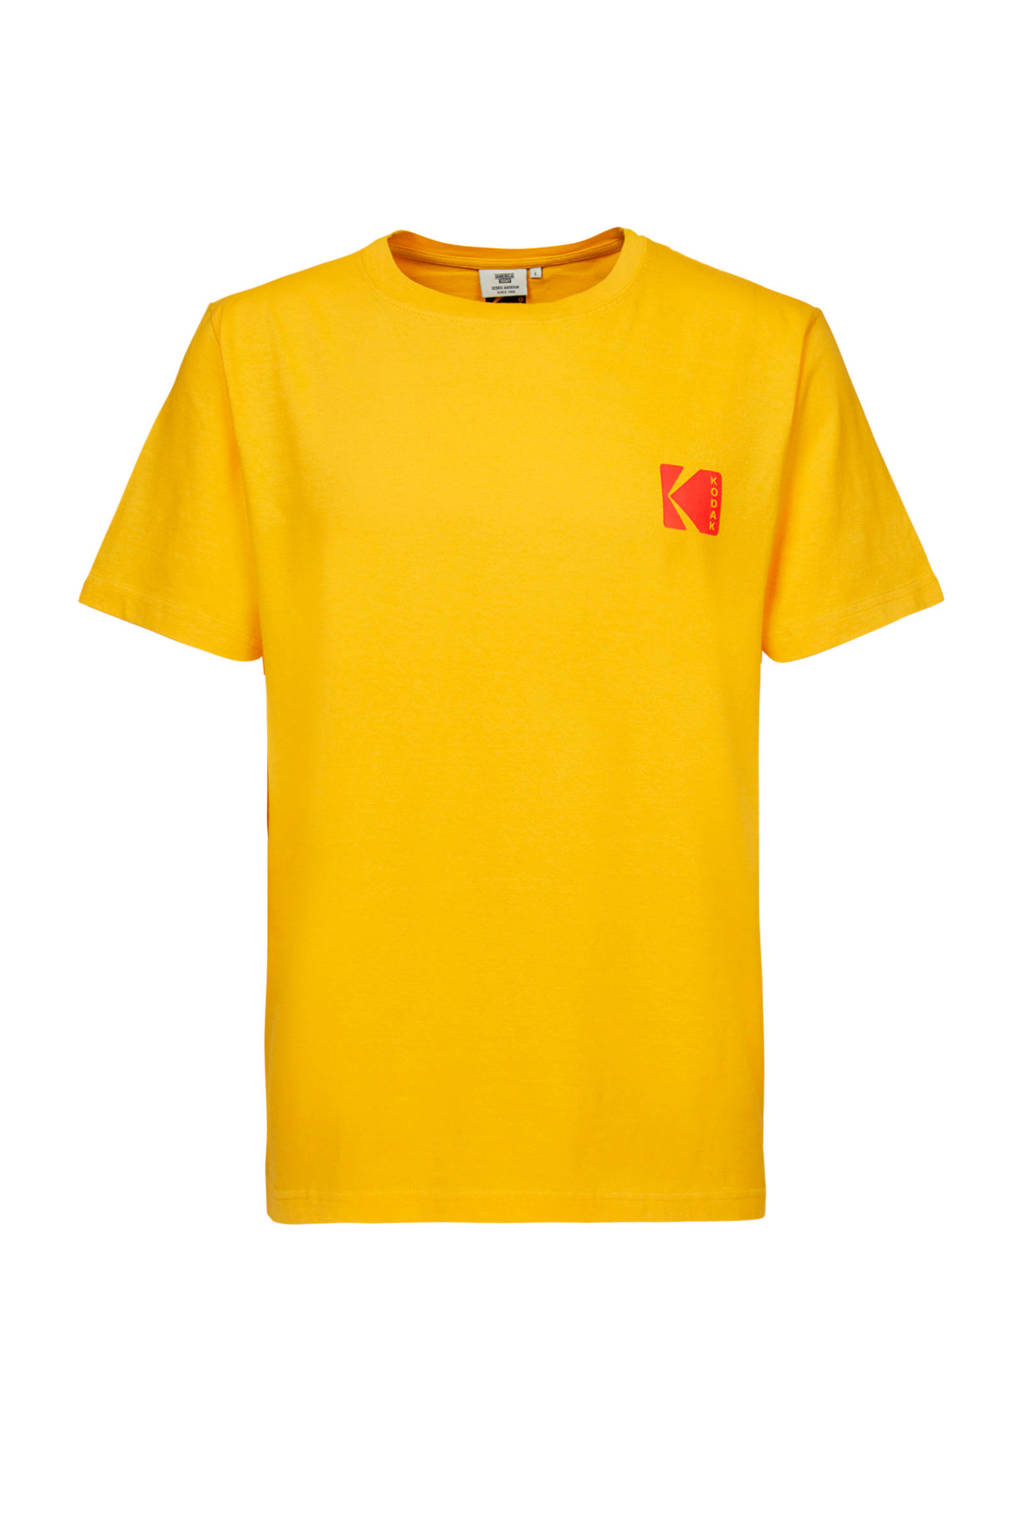 America Today T-shirt met printopdruk yellow, Yellow